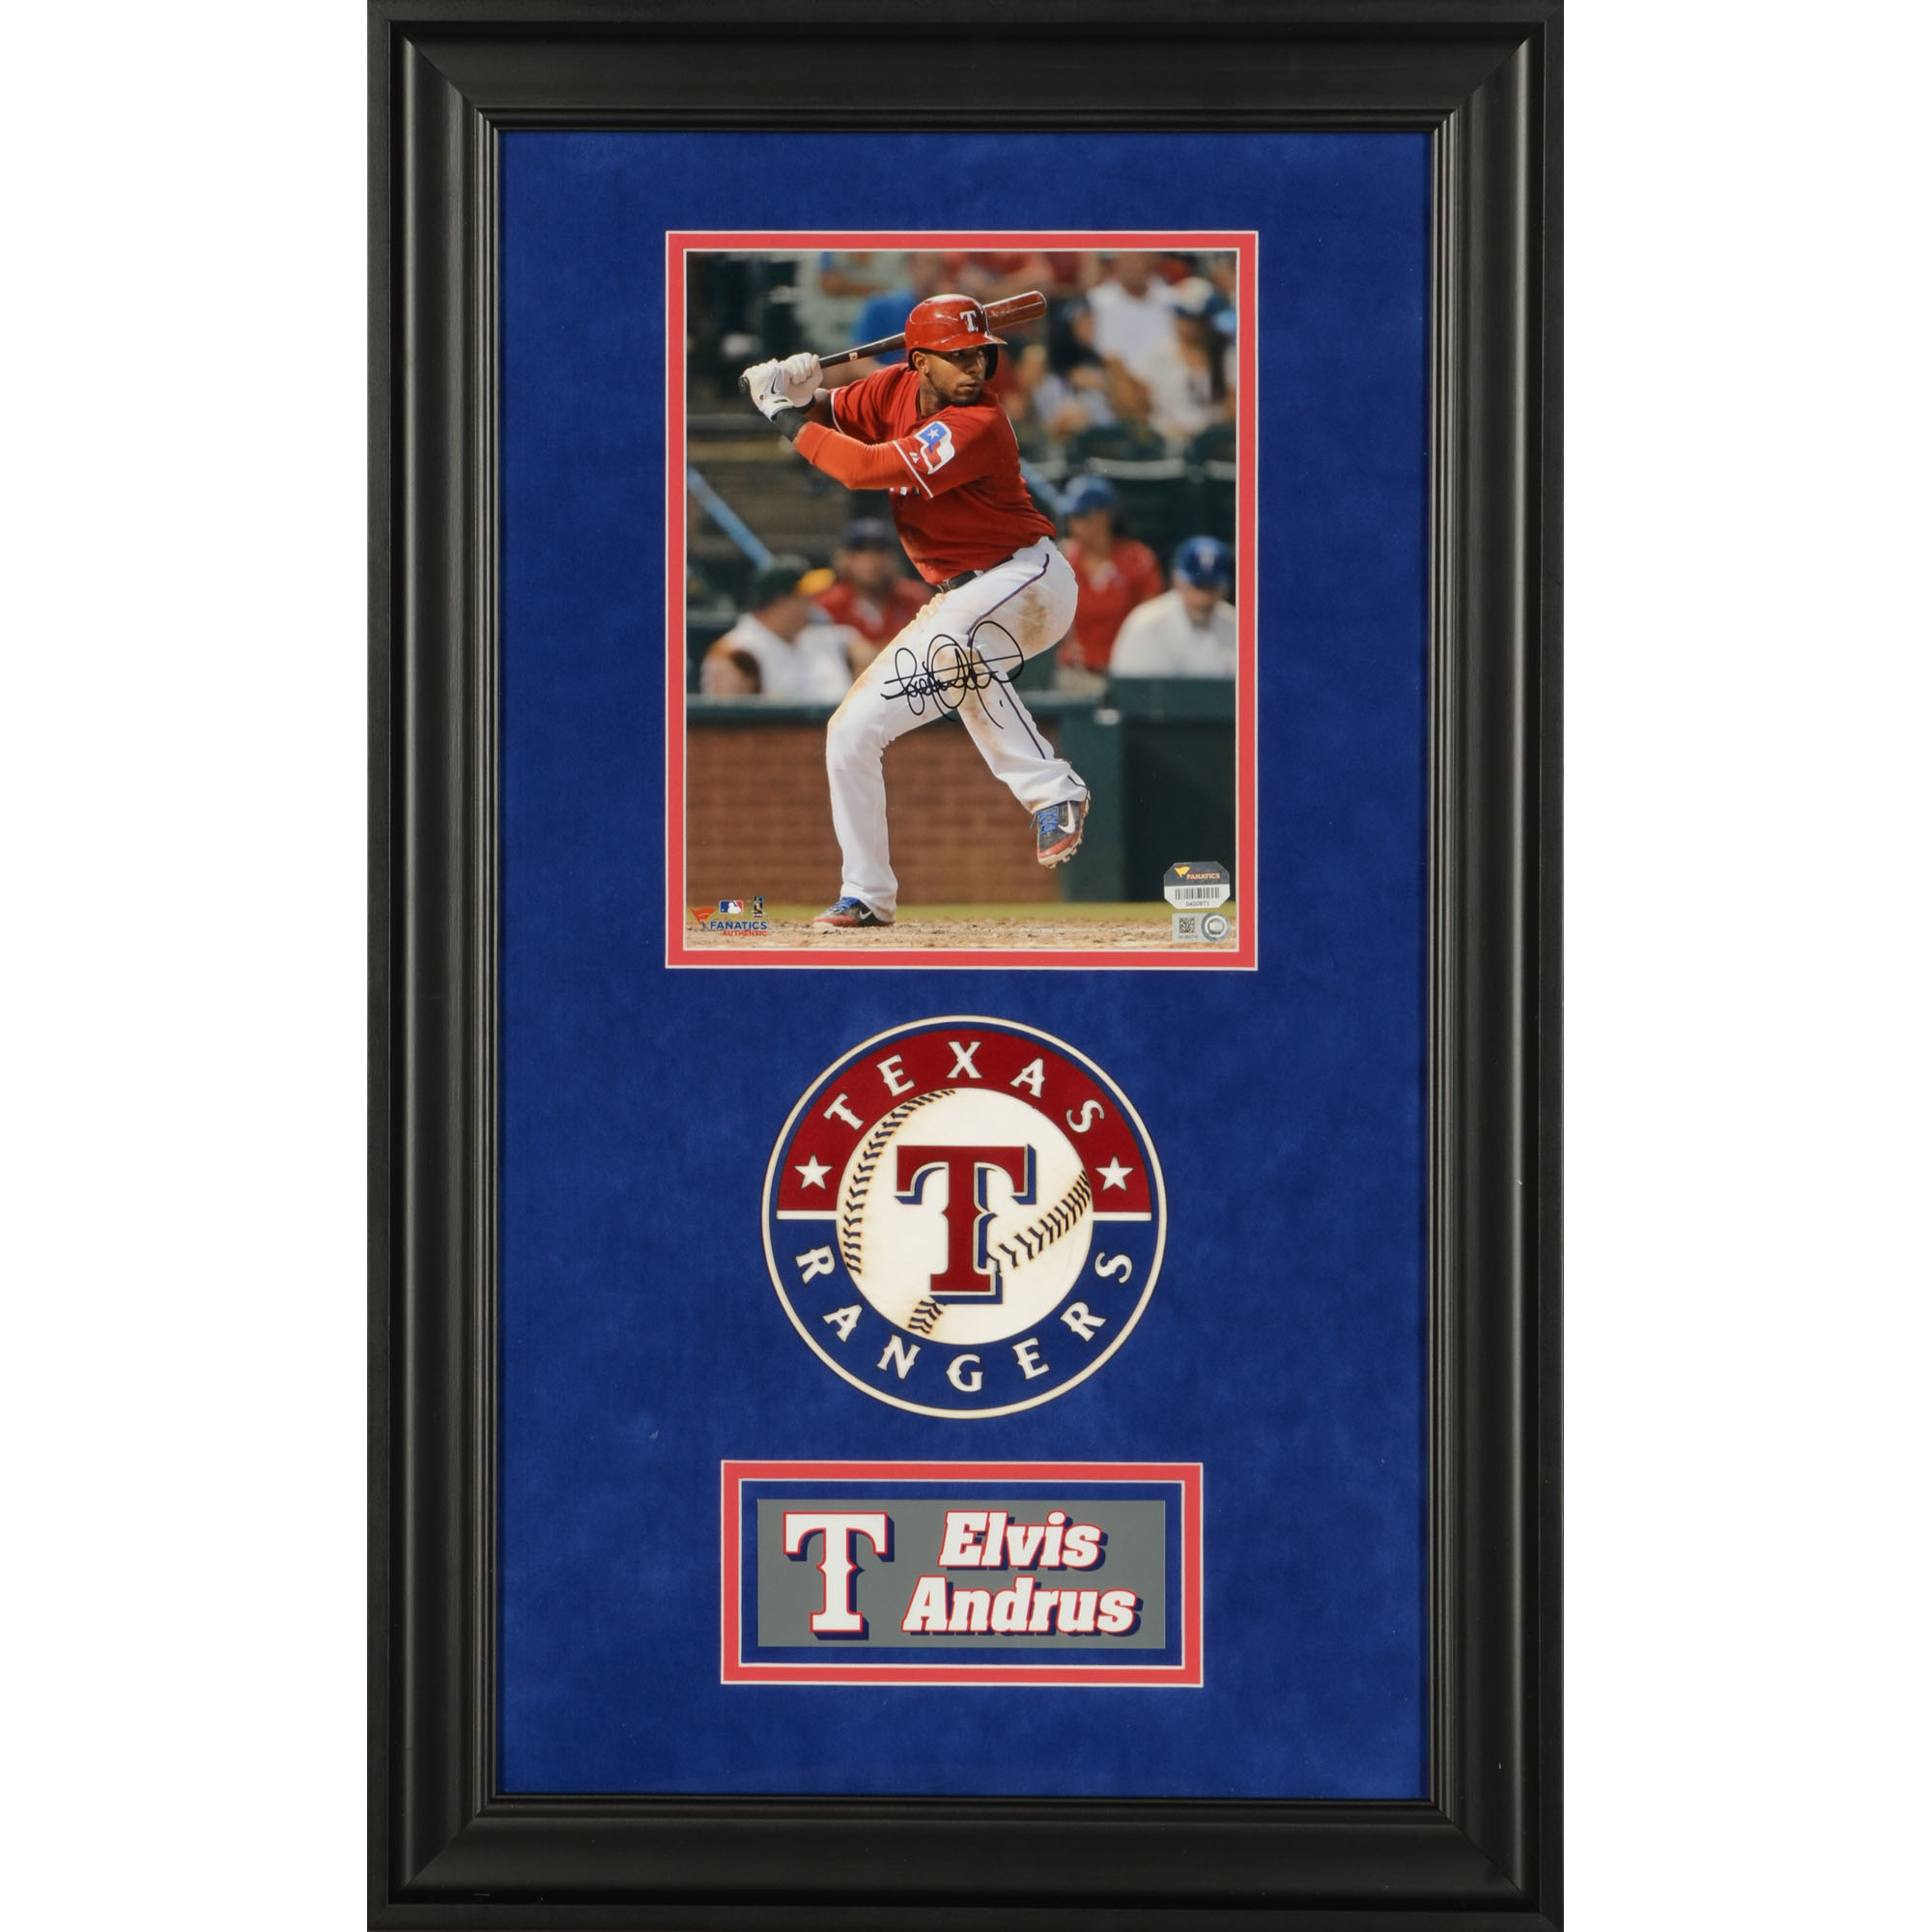 """Elvis Andrus Texas Rangers Fanatics Authentic Deluxe Framed Autographed 8"""" x 10"""" Hitting Leg Up Photograph - No Size"""